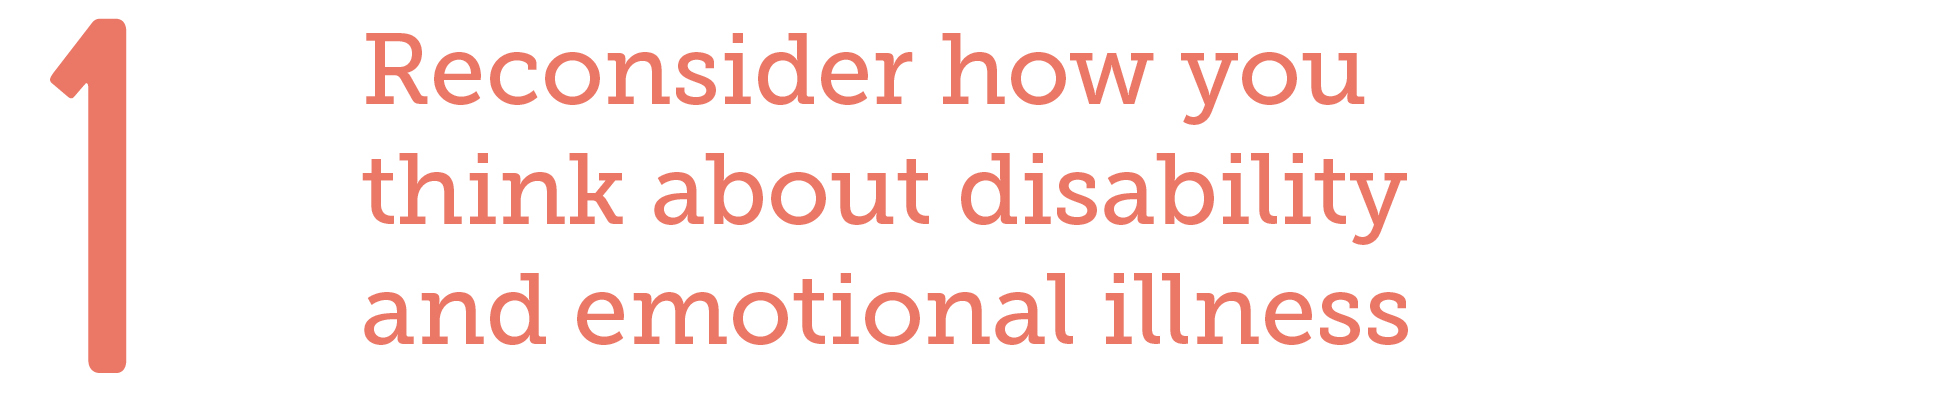 1. Reconsider how you think about disability and emotional illness